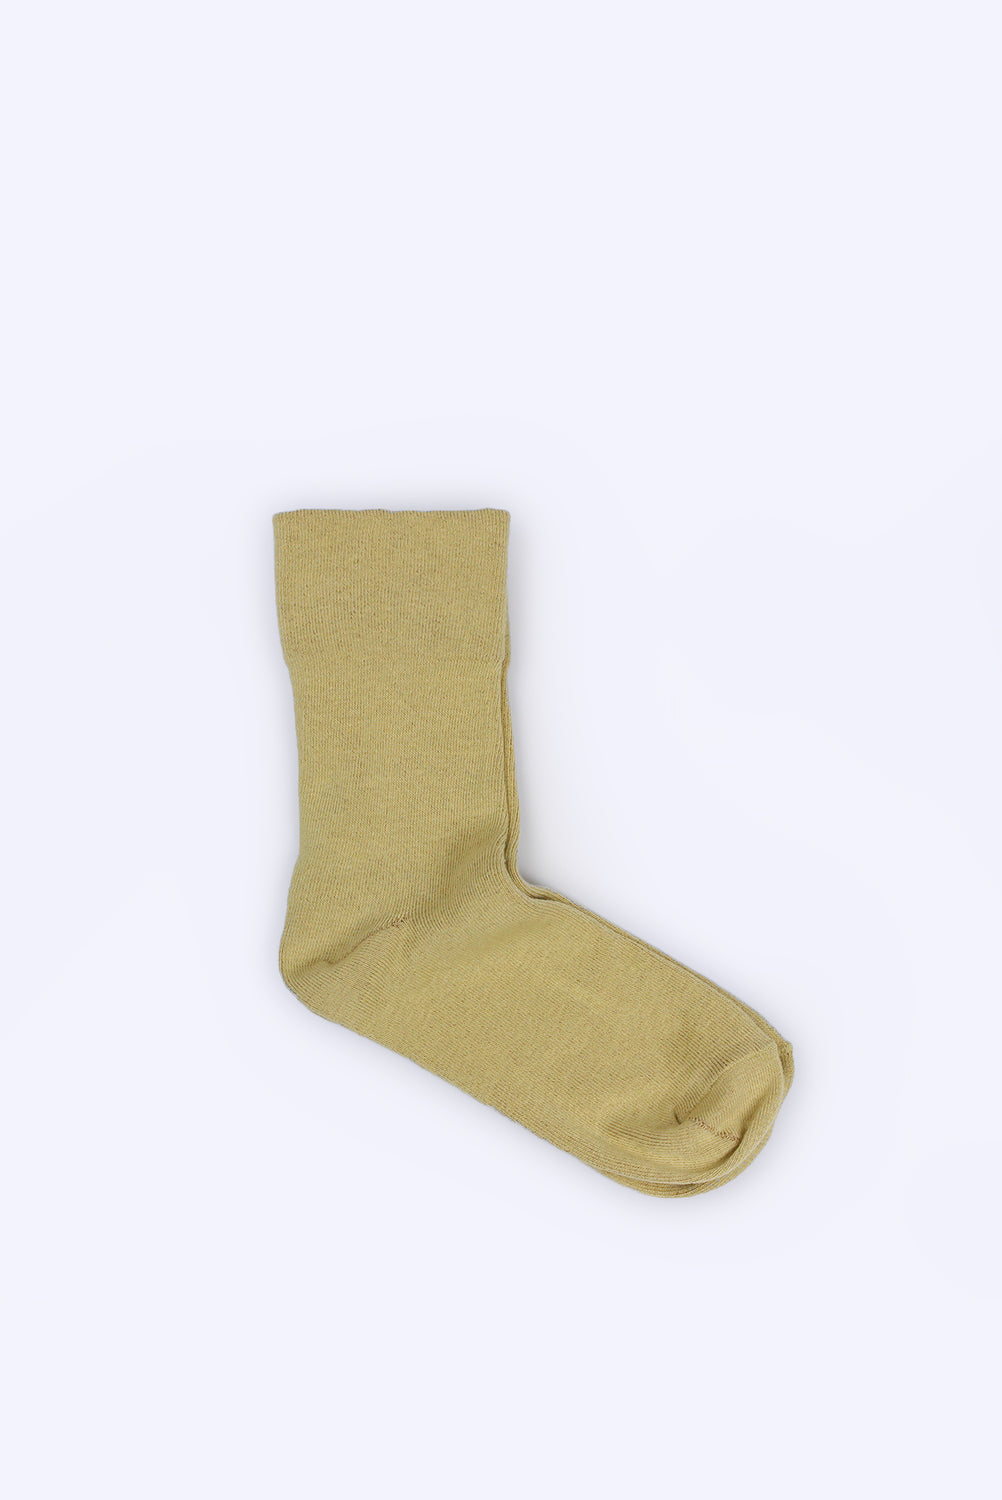 Foot Comfort Socks, Yellow with Brown Lining